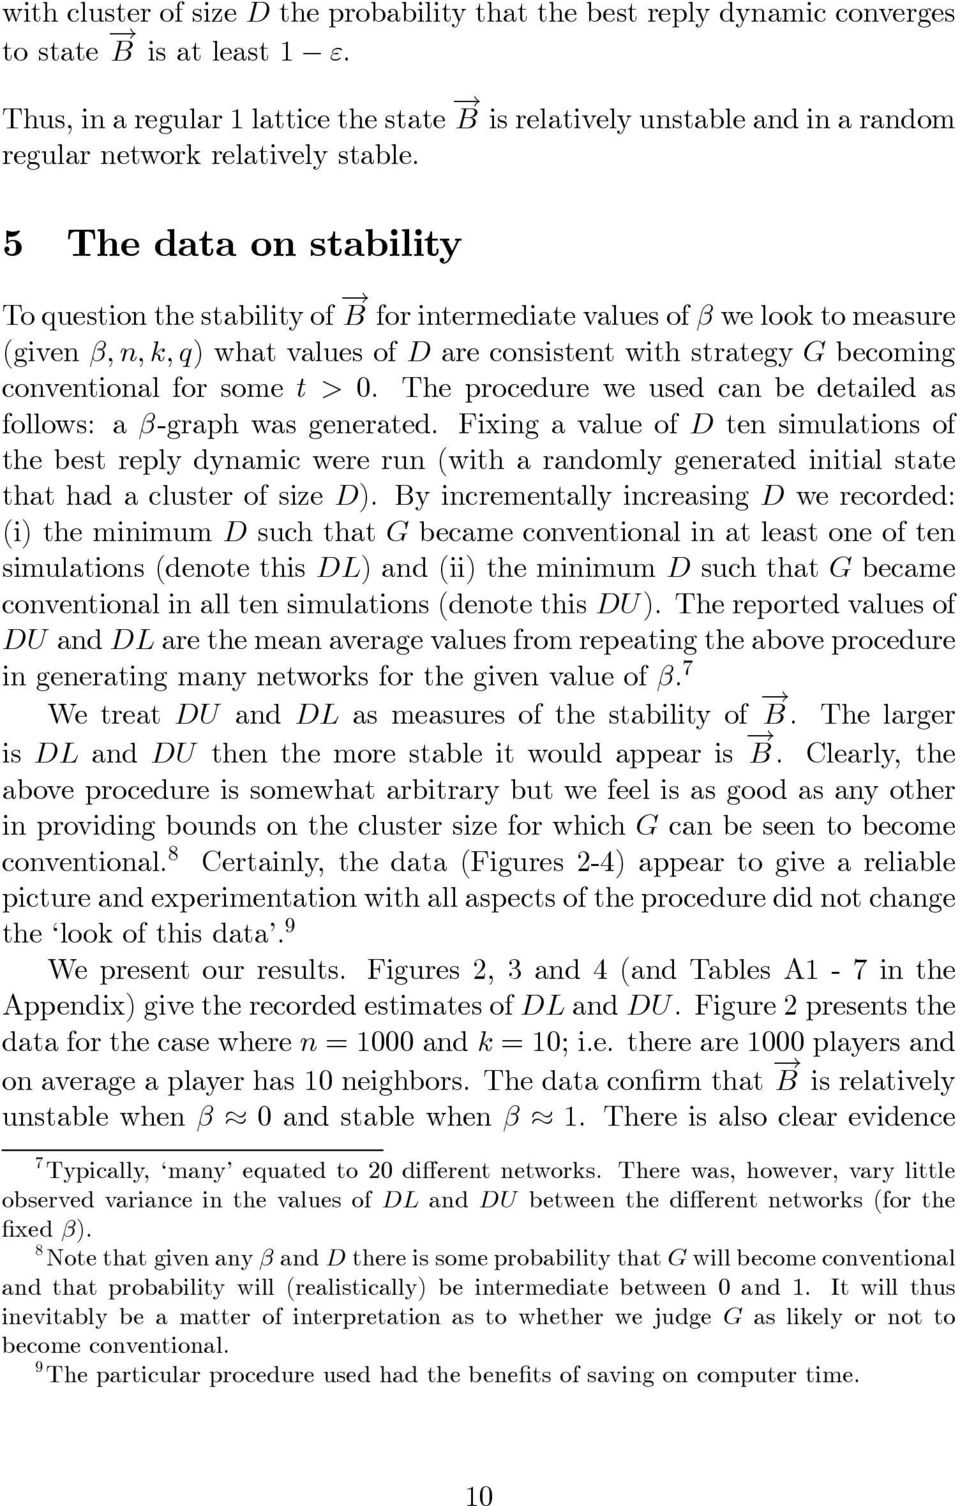 5 The data on stability To question the stability of B for intermediate values of β we look to measure (given β,n,k,q) what values of D are consistent with strategy G becoming conventional for some